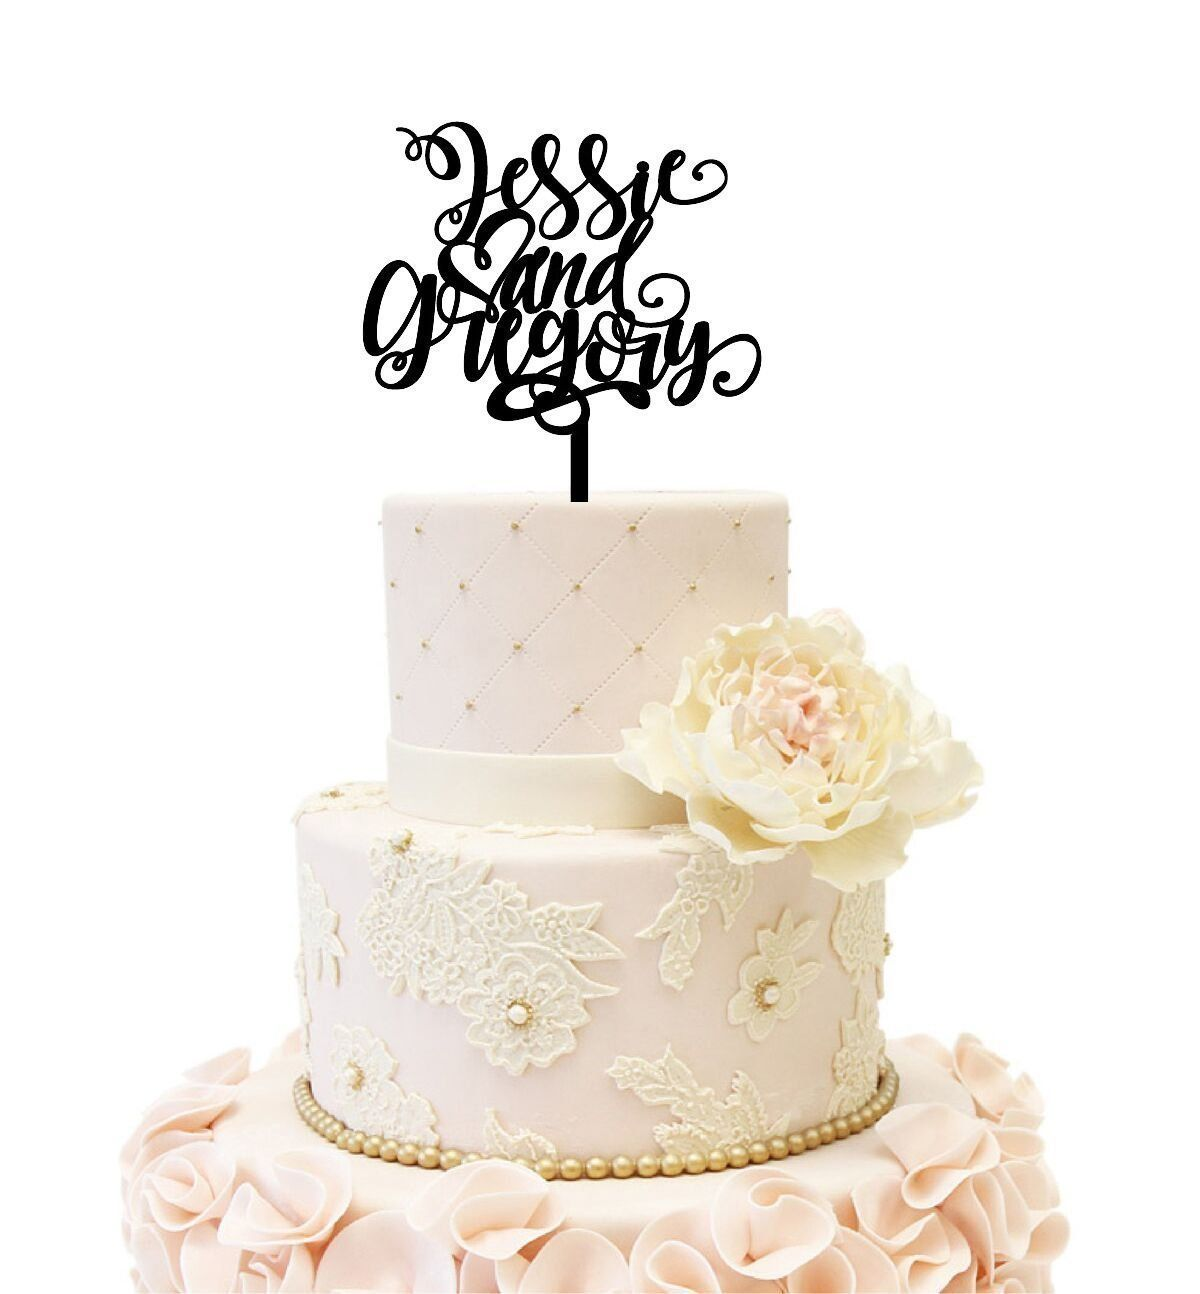 Personalized names wedding anniversary acrylic cake topper many